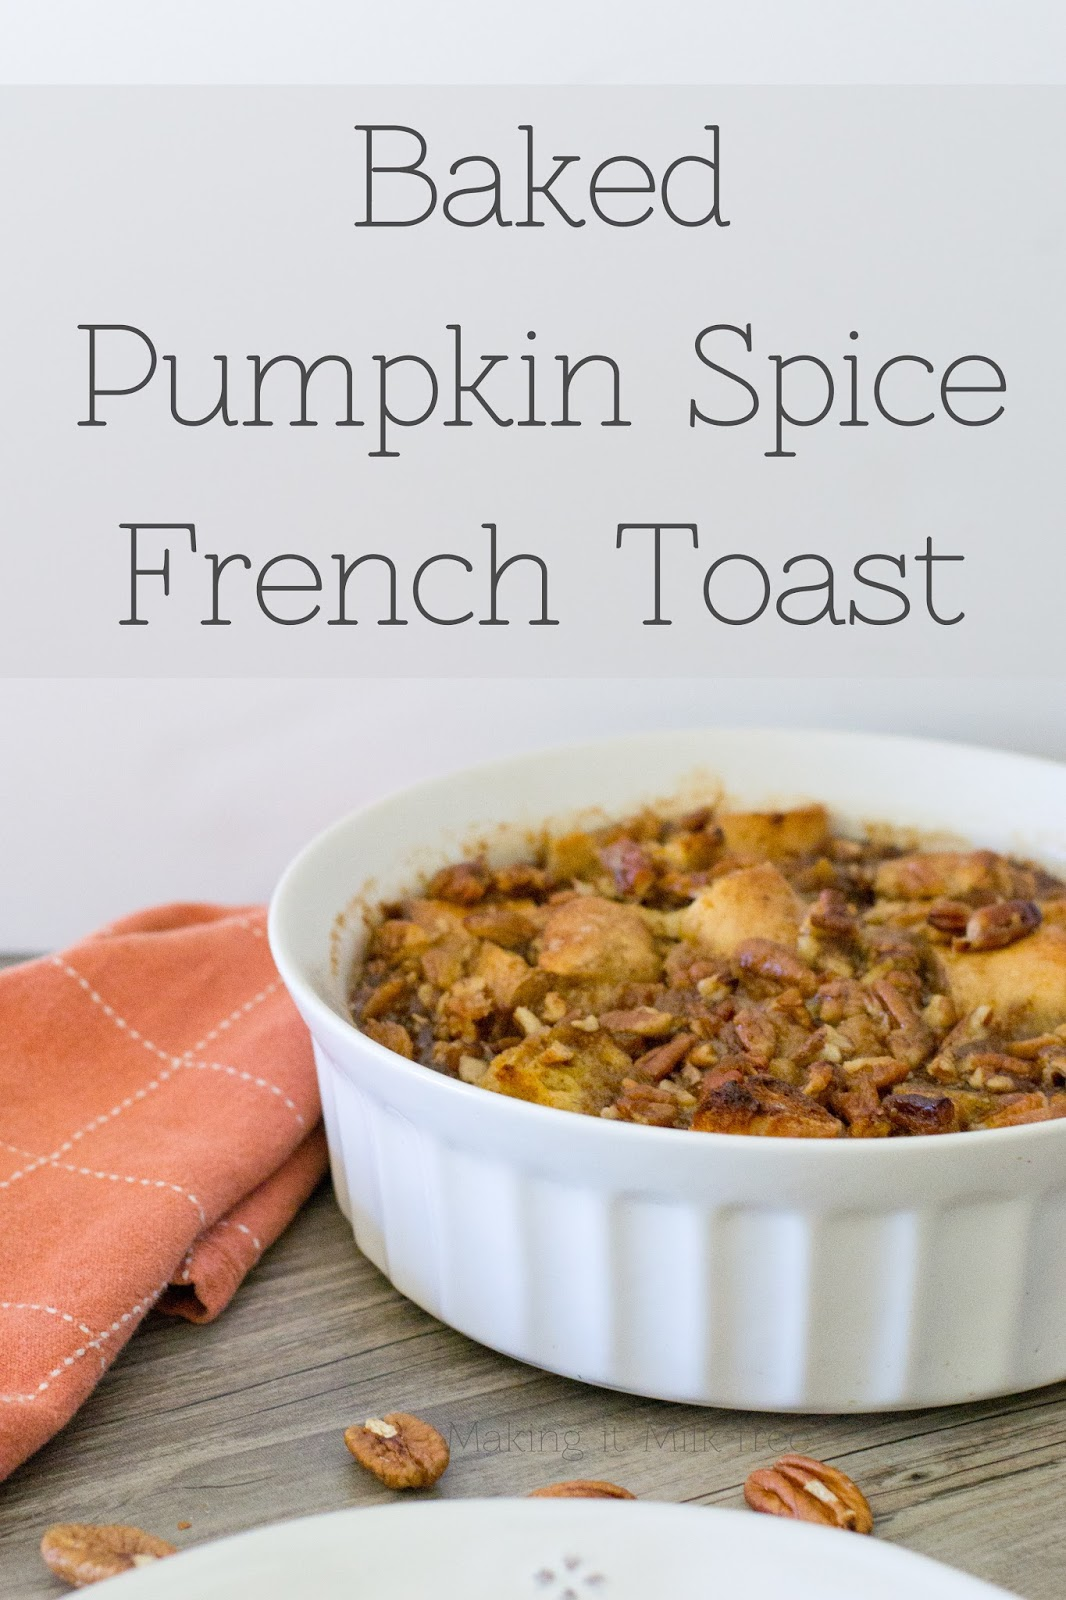 #glutenfree #dairyfree #frenchtoast #breakfast #pumpkinspice